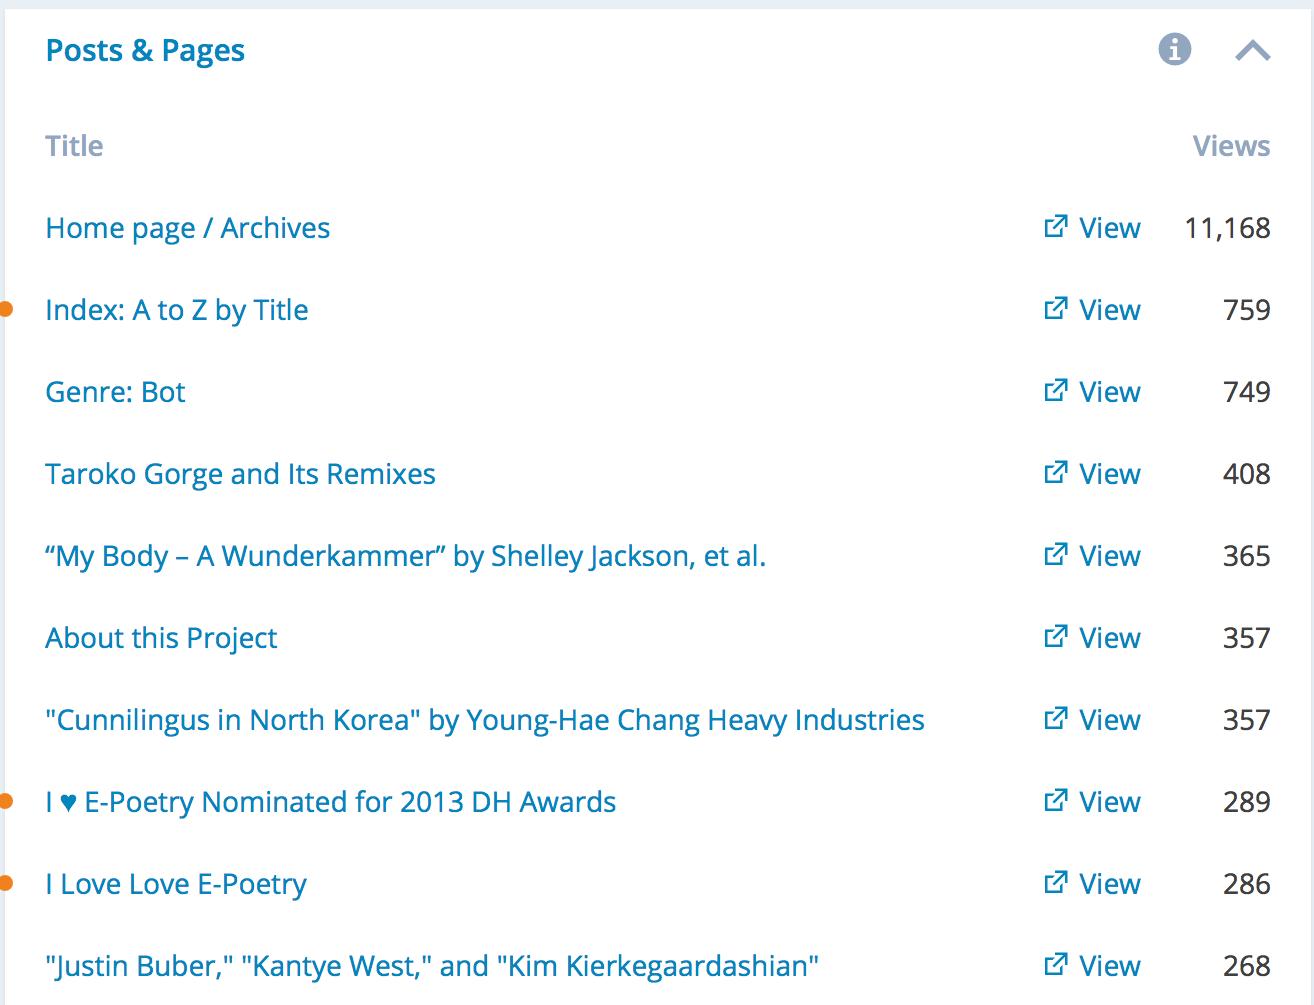 2014popularposts